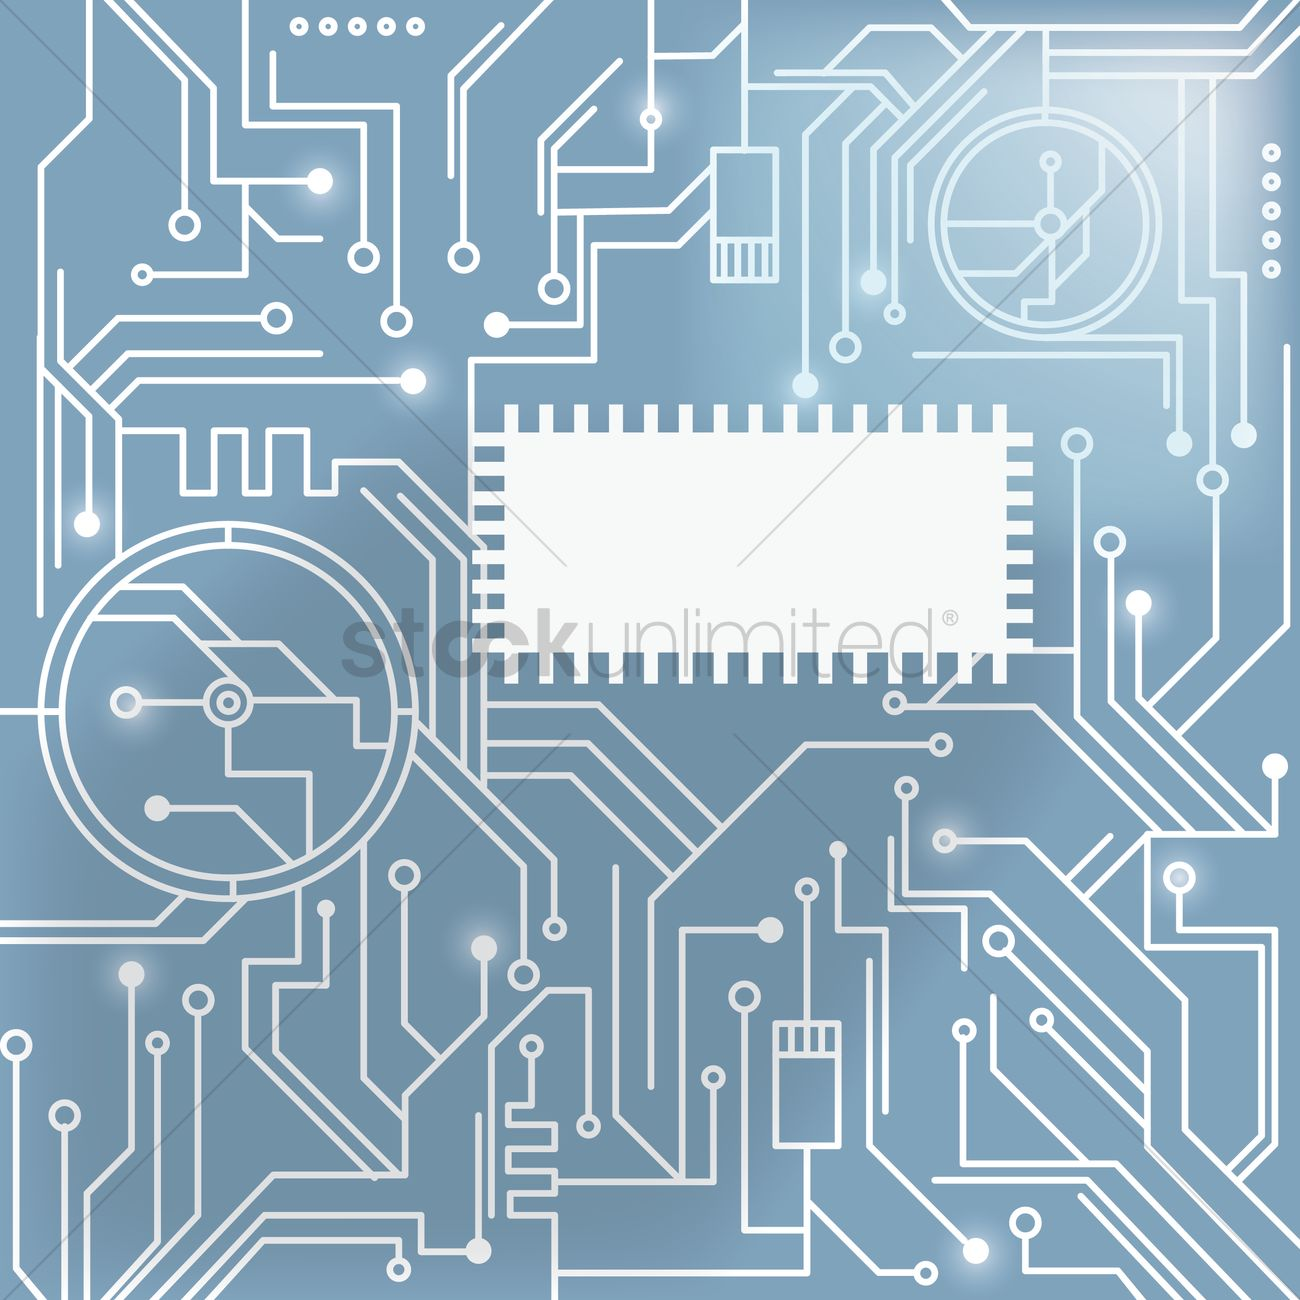 Processor On Circuit Board Design Vector Image 1647244 Diagram Graphic